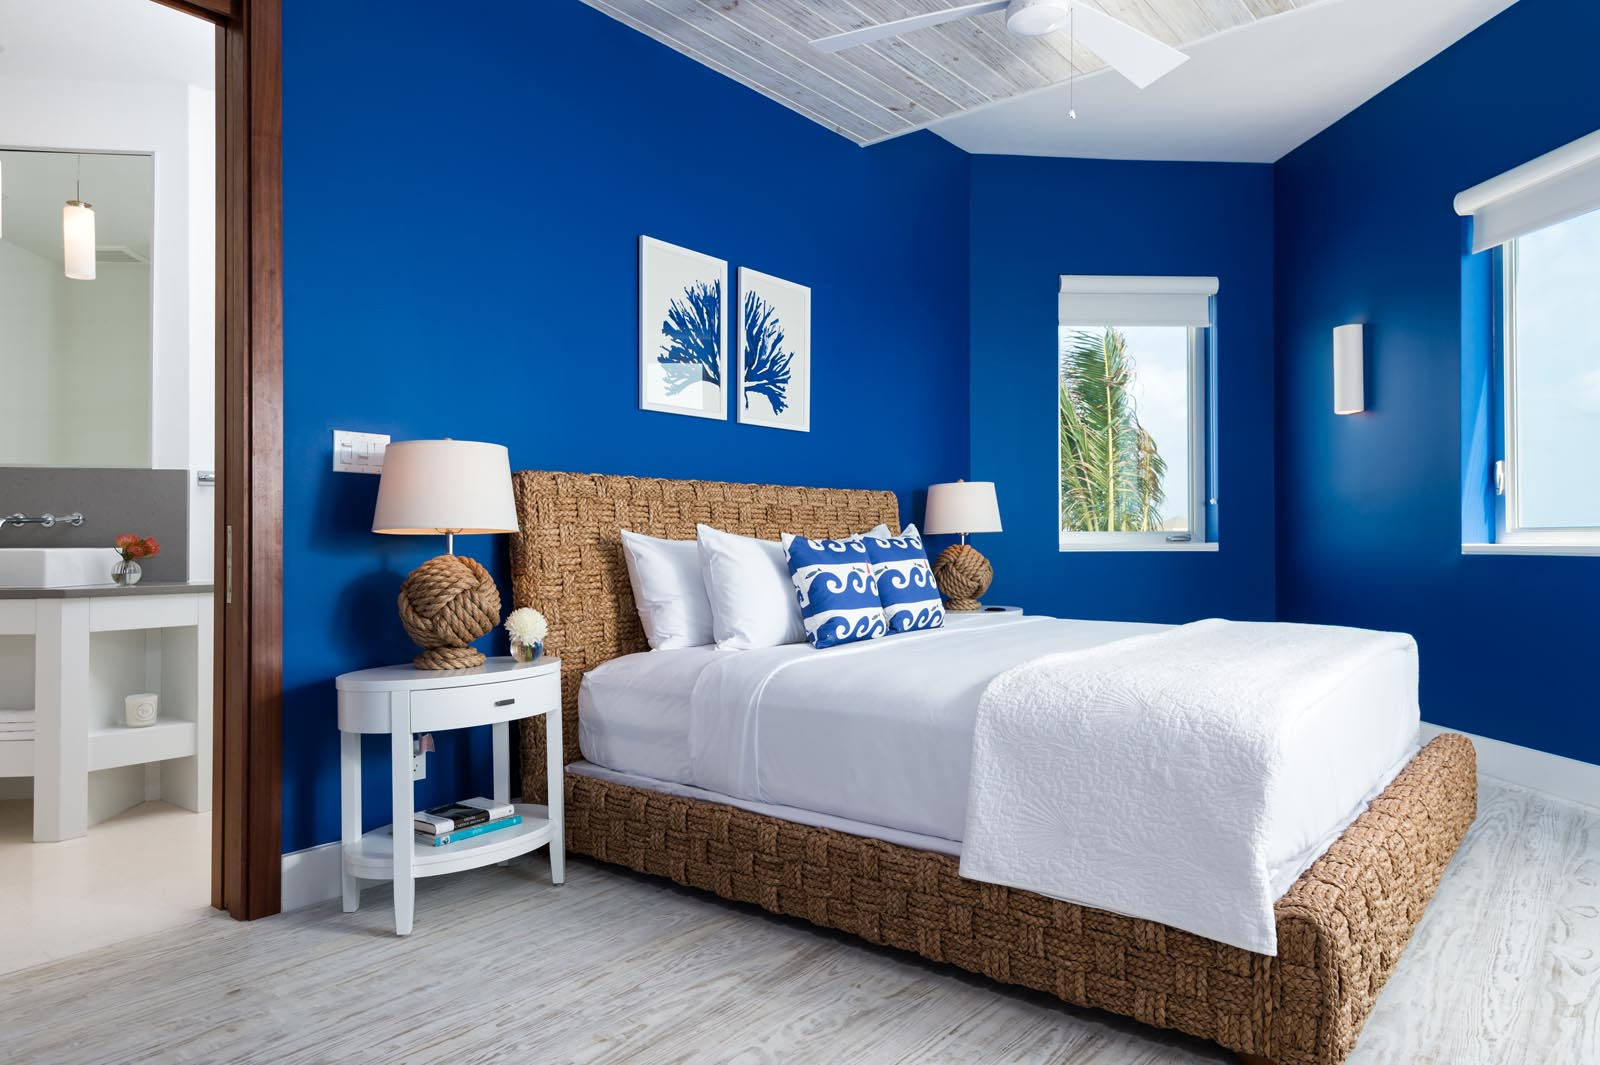 One of the lovely master bedrooms at Villa Aguaribay, Long Bay Beach, Providenciales (Provo), Turks and Caicos Islands.